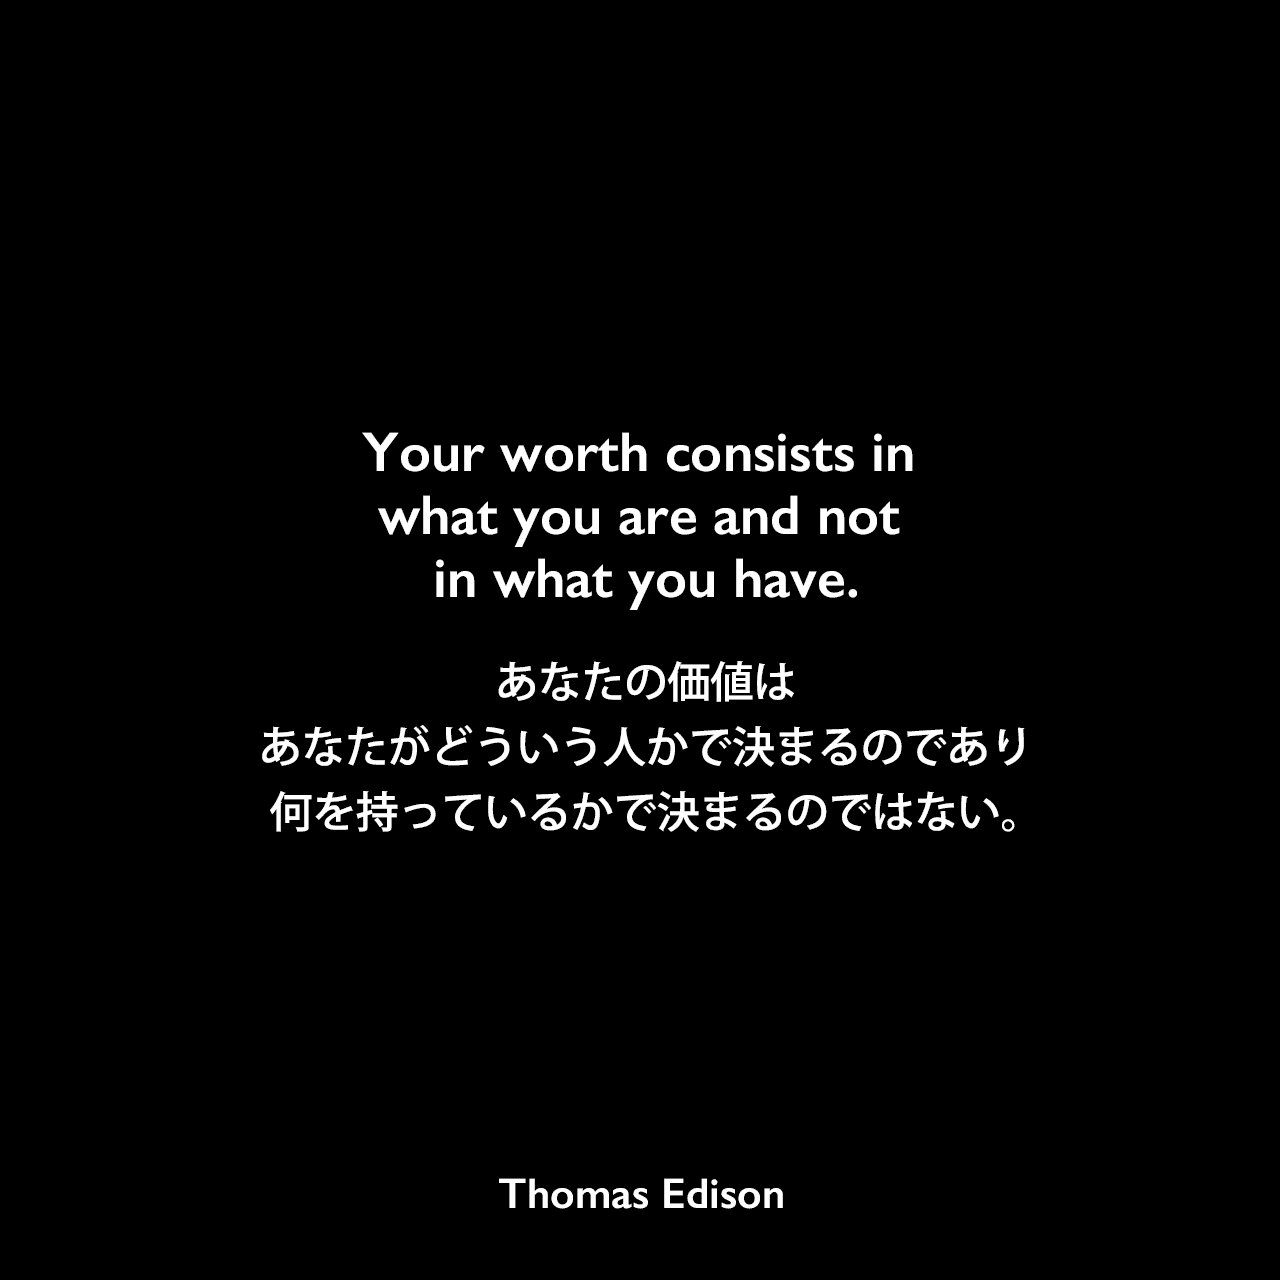 Your worth consists in what you are and not in what you have.あなたの価値は、あなたがどういう人かで決まるのであり、何を持っているかで決まるのではない。Thomas Edison